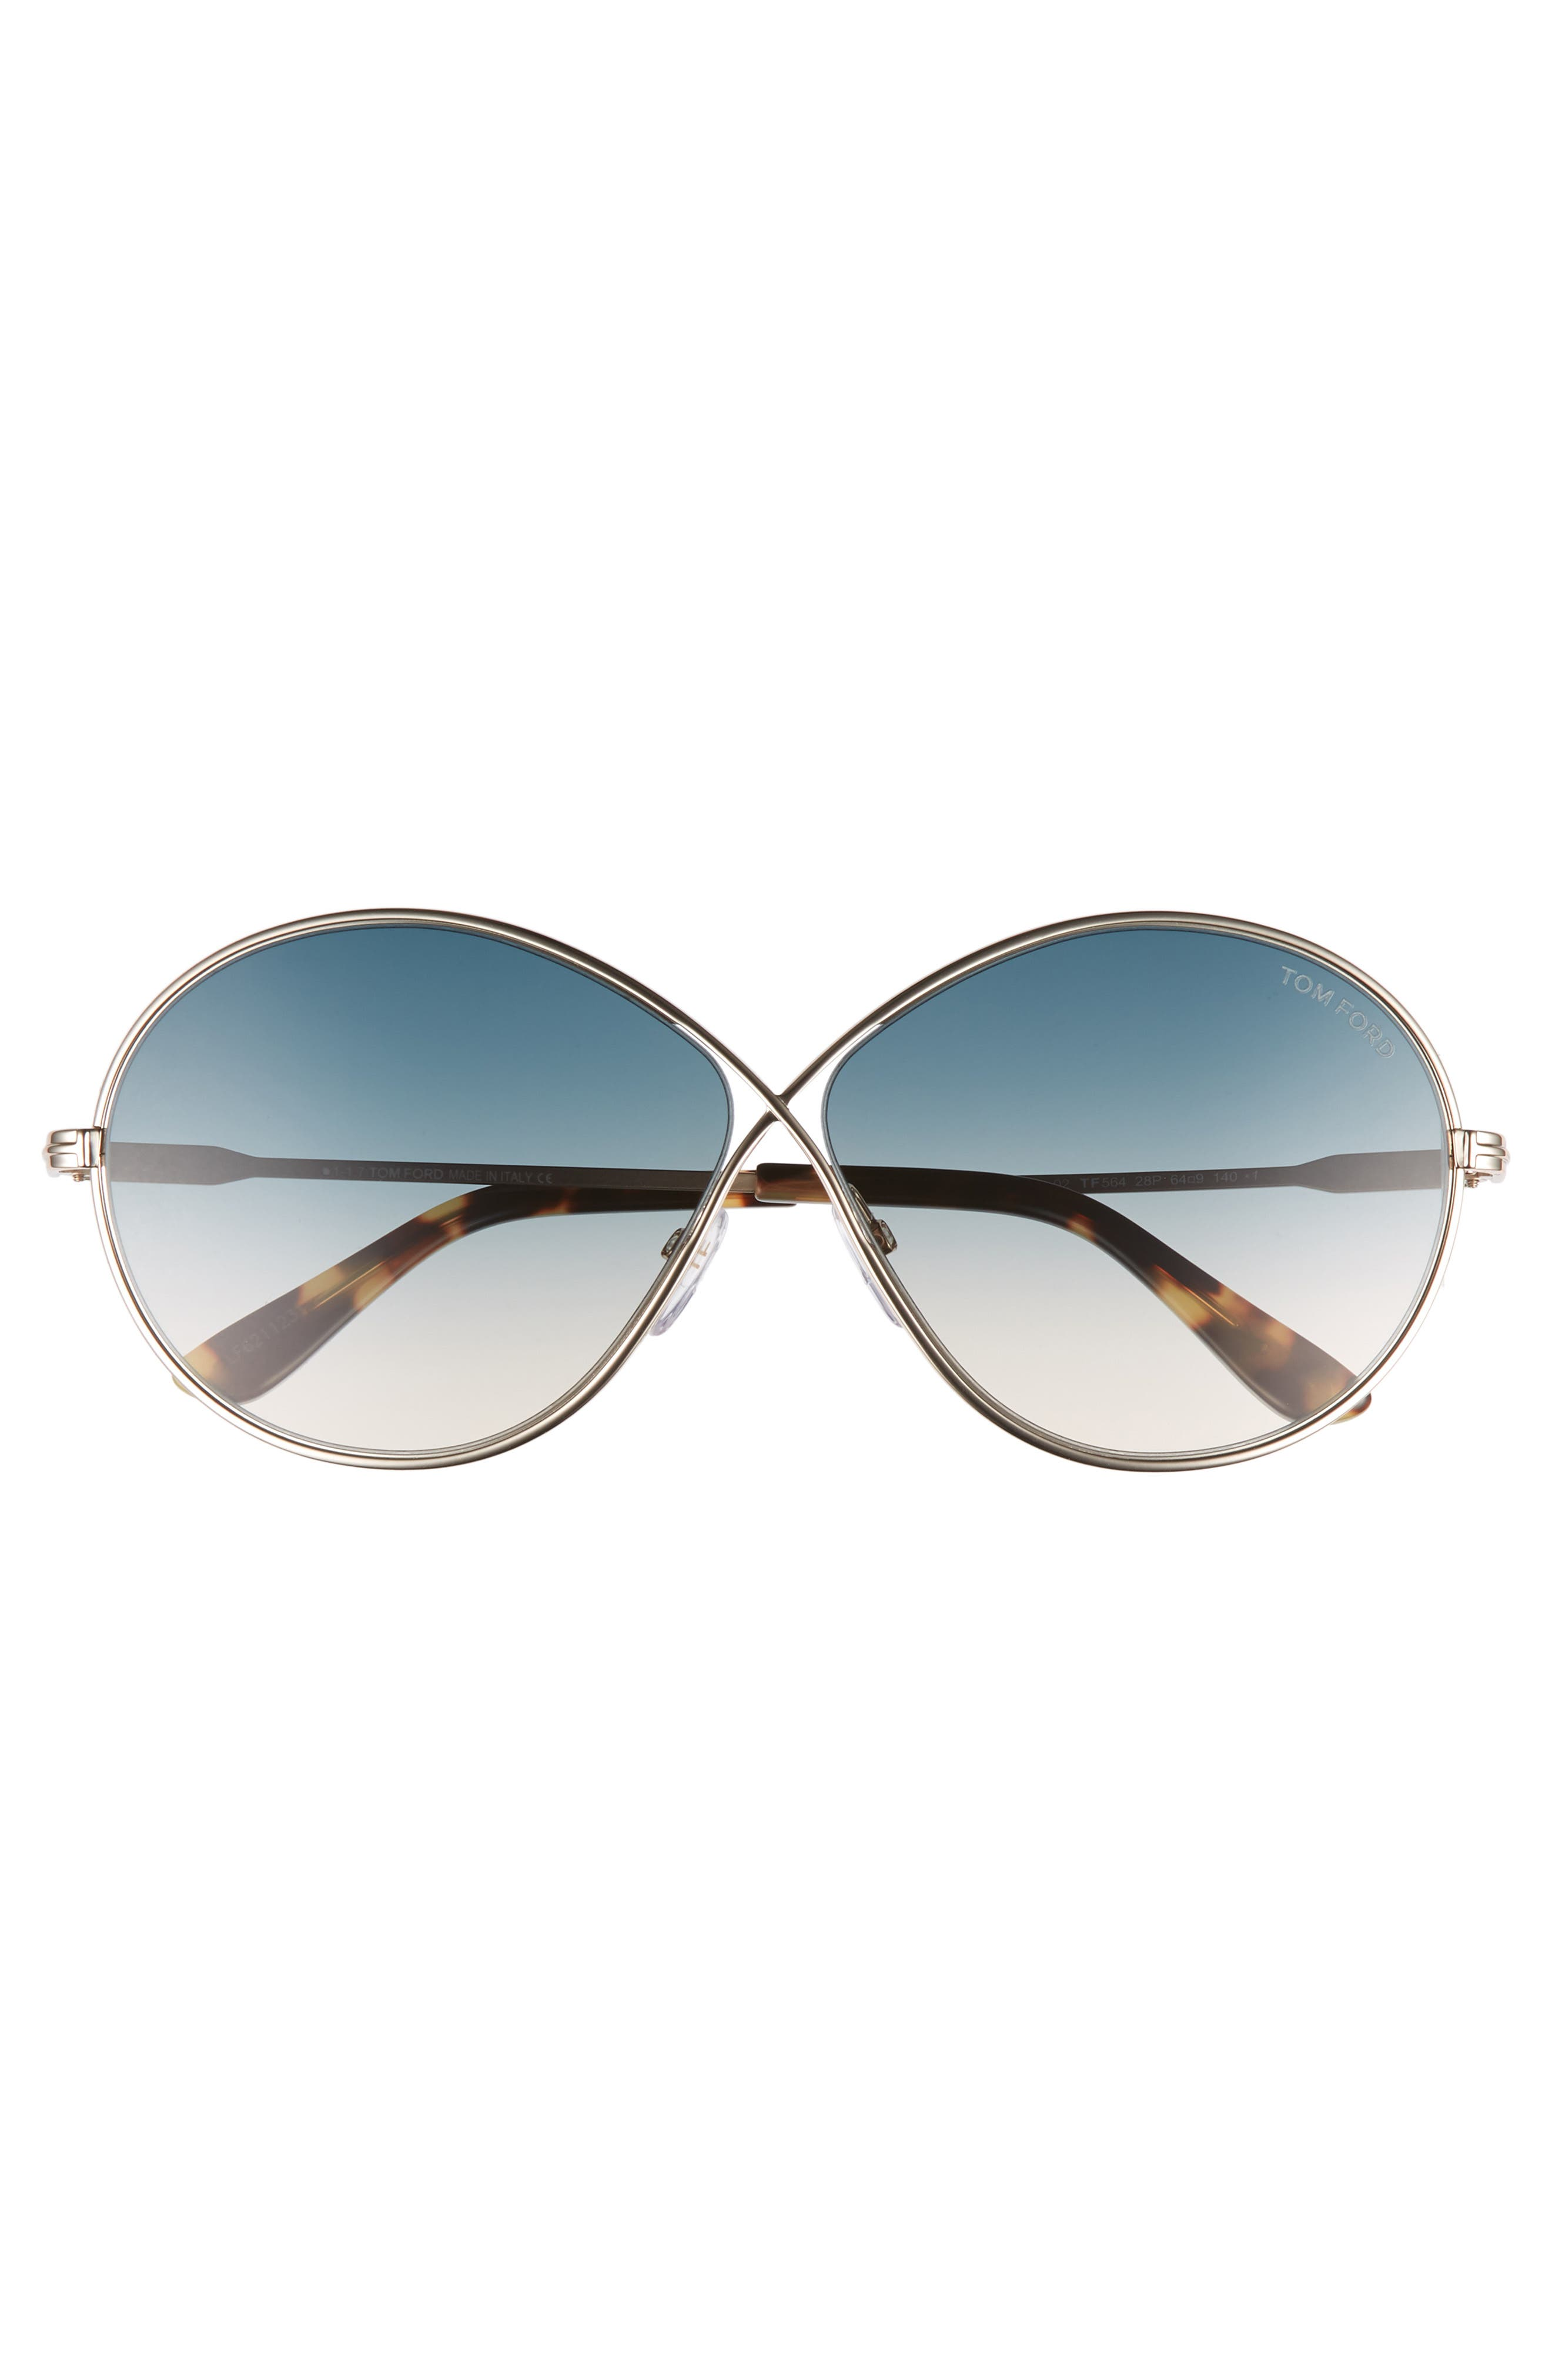 Rania 64mm Oversize Round Sunglasses,                             Alternate thumbnail 8, color,